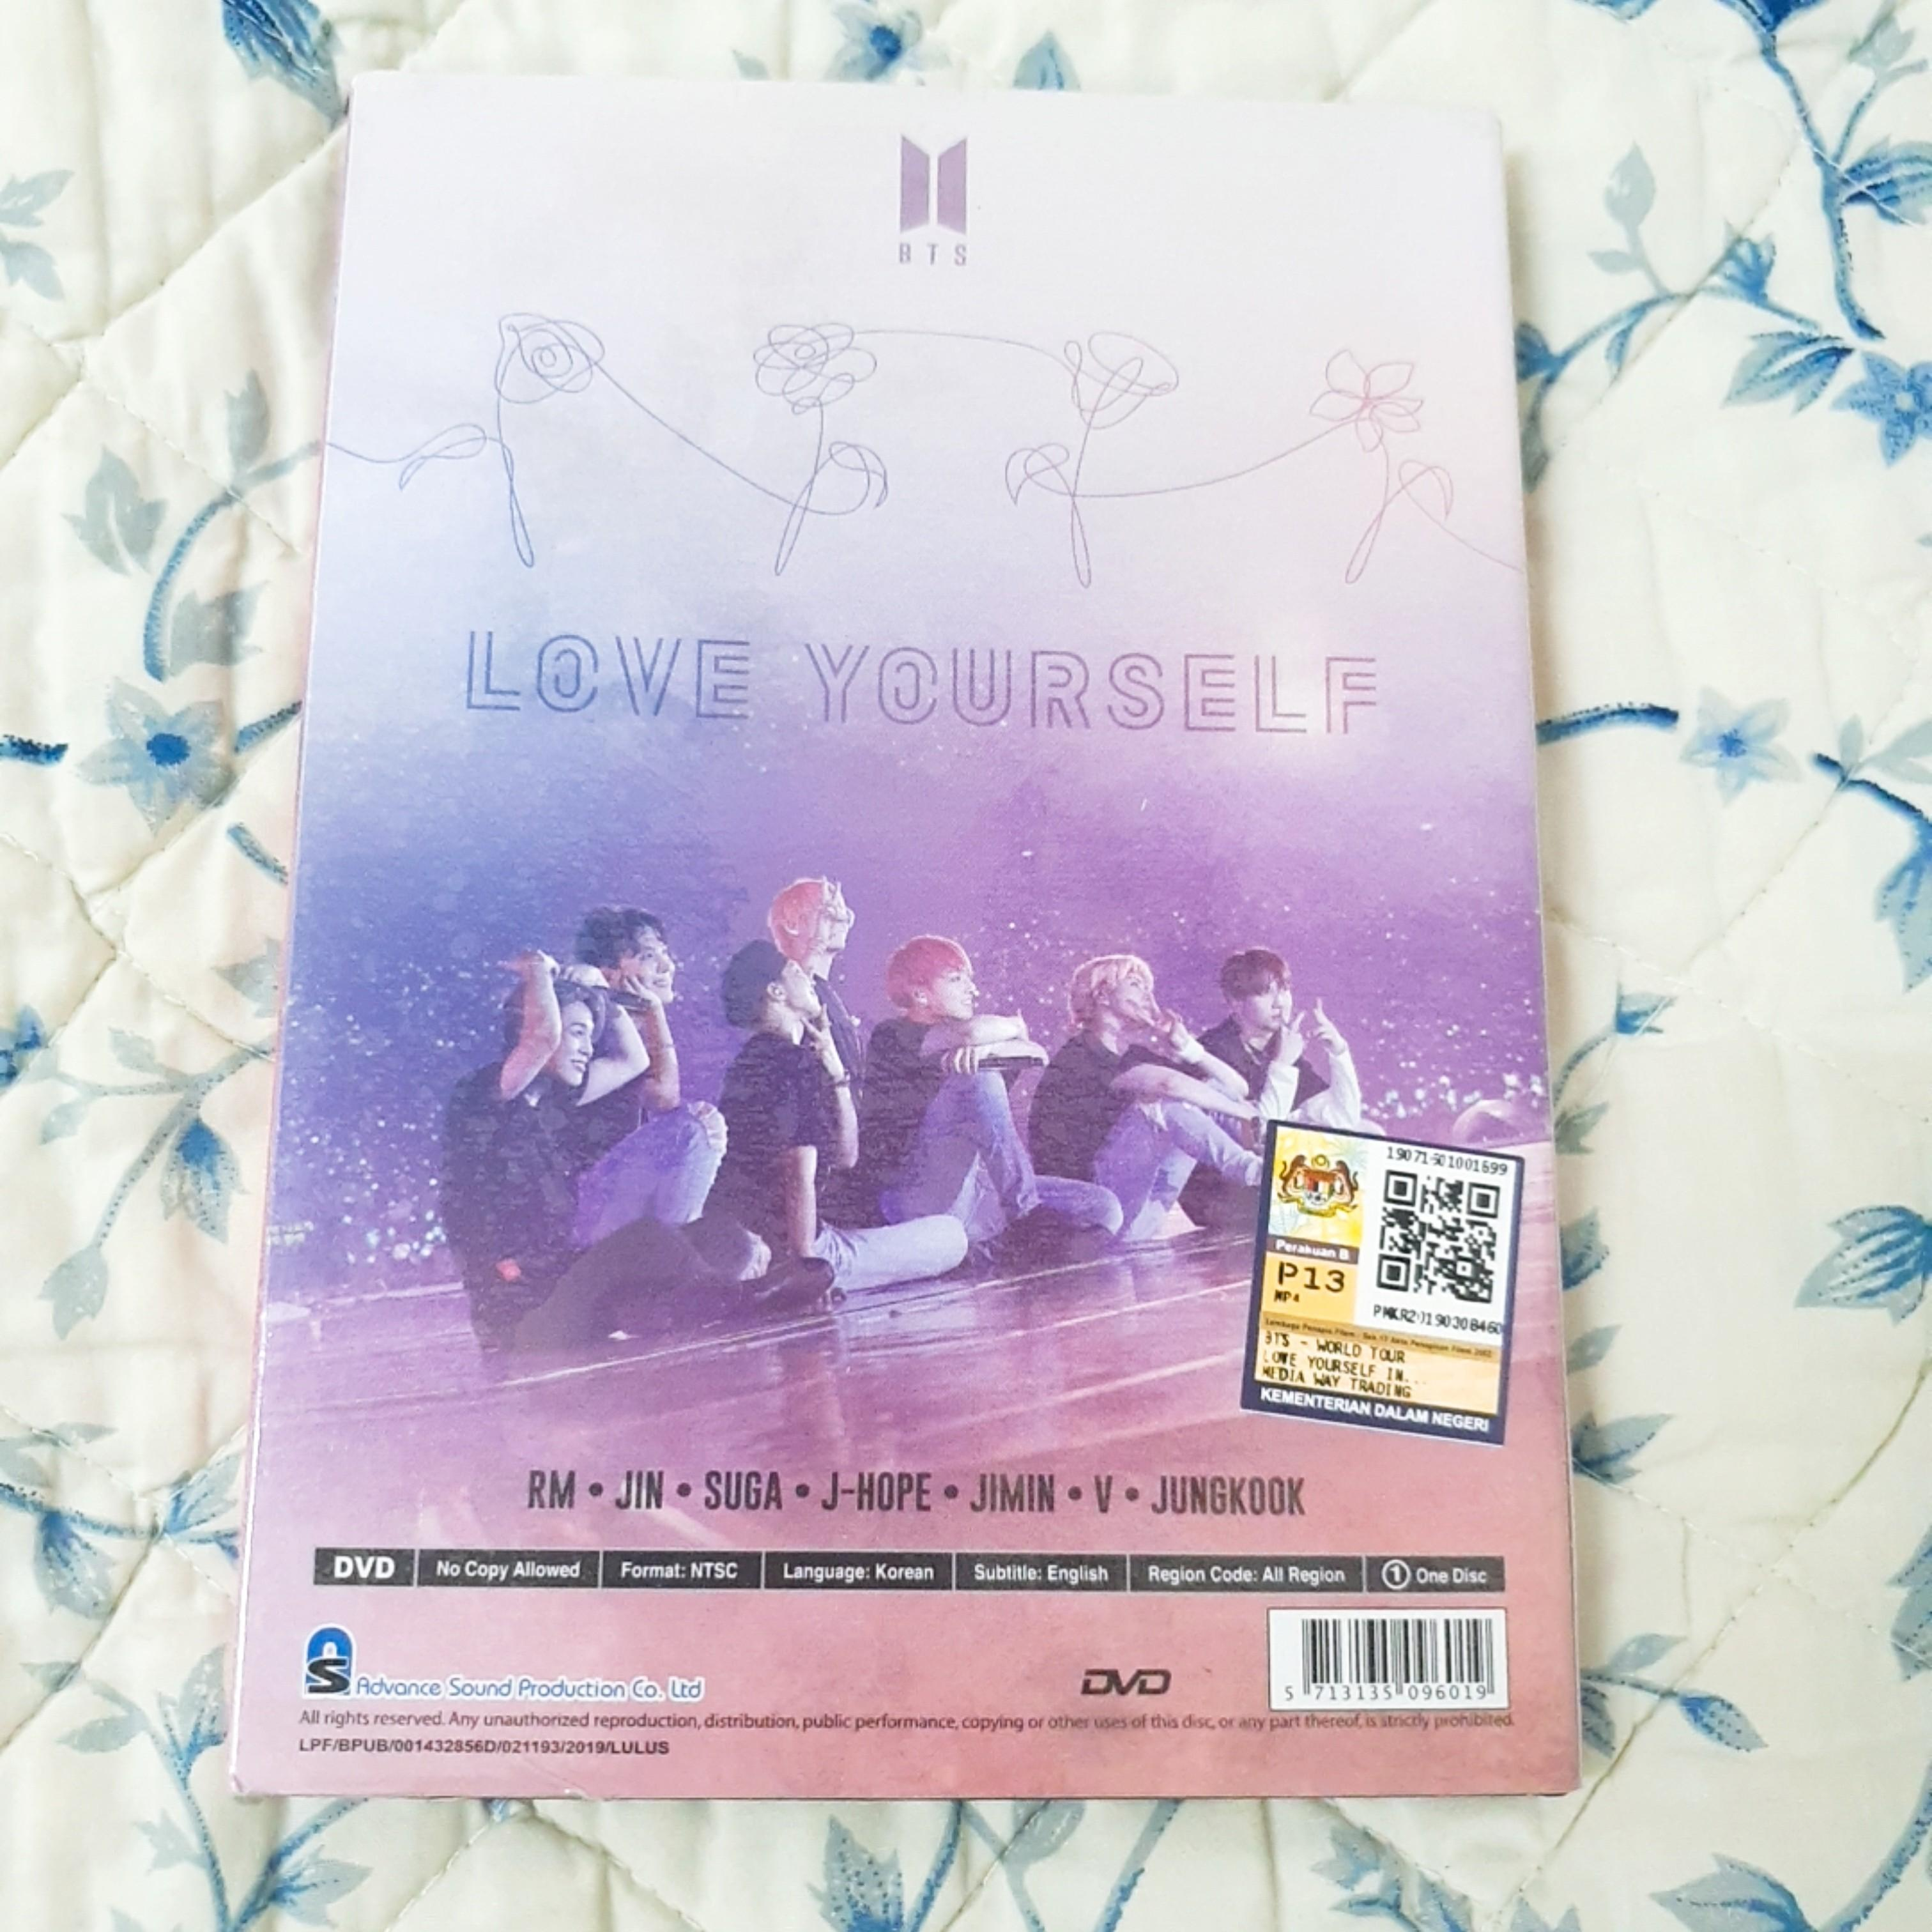 BTS World Tour : Love Yourself In Seoul Concert 2019 (Unofficial)